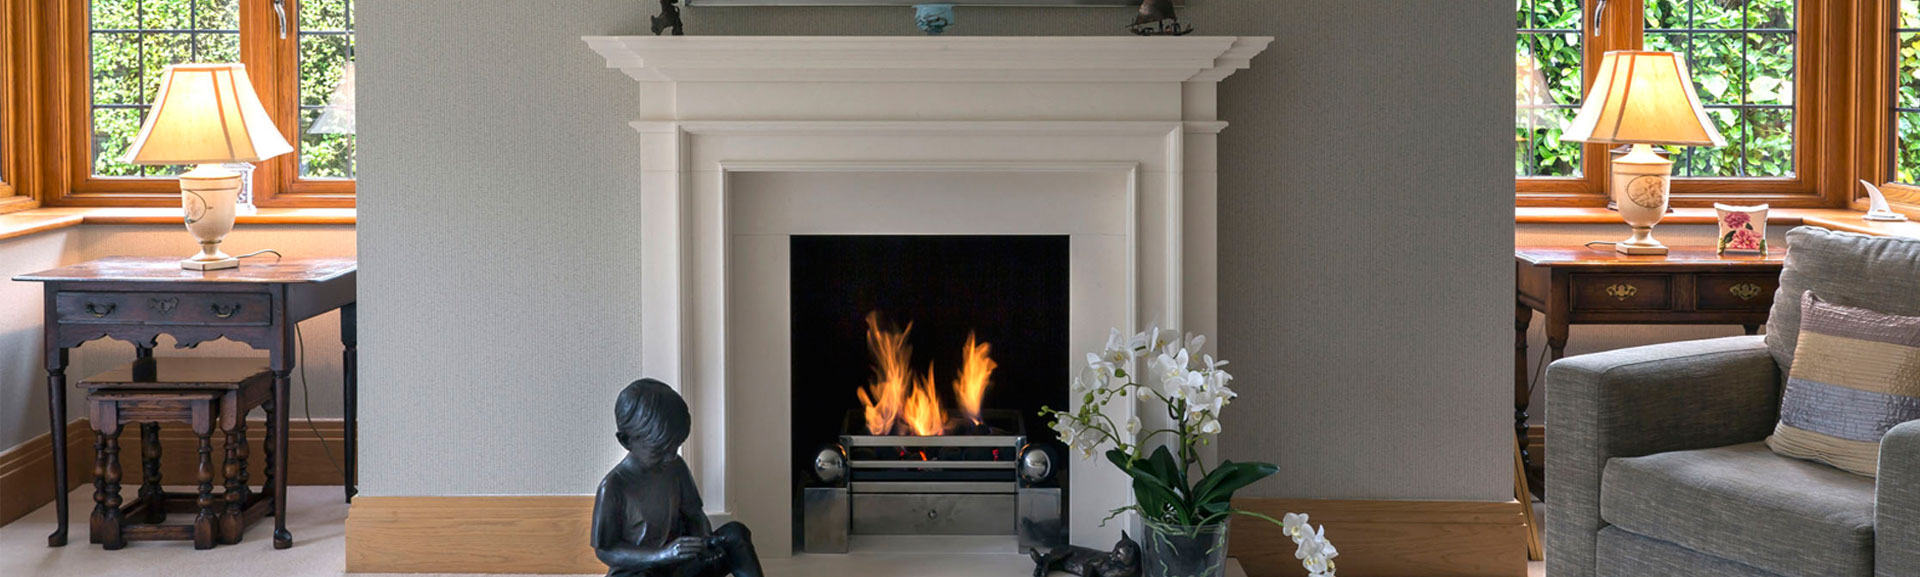 Marble granite fireplaces mentals for sale marble for European home fireplace